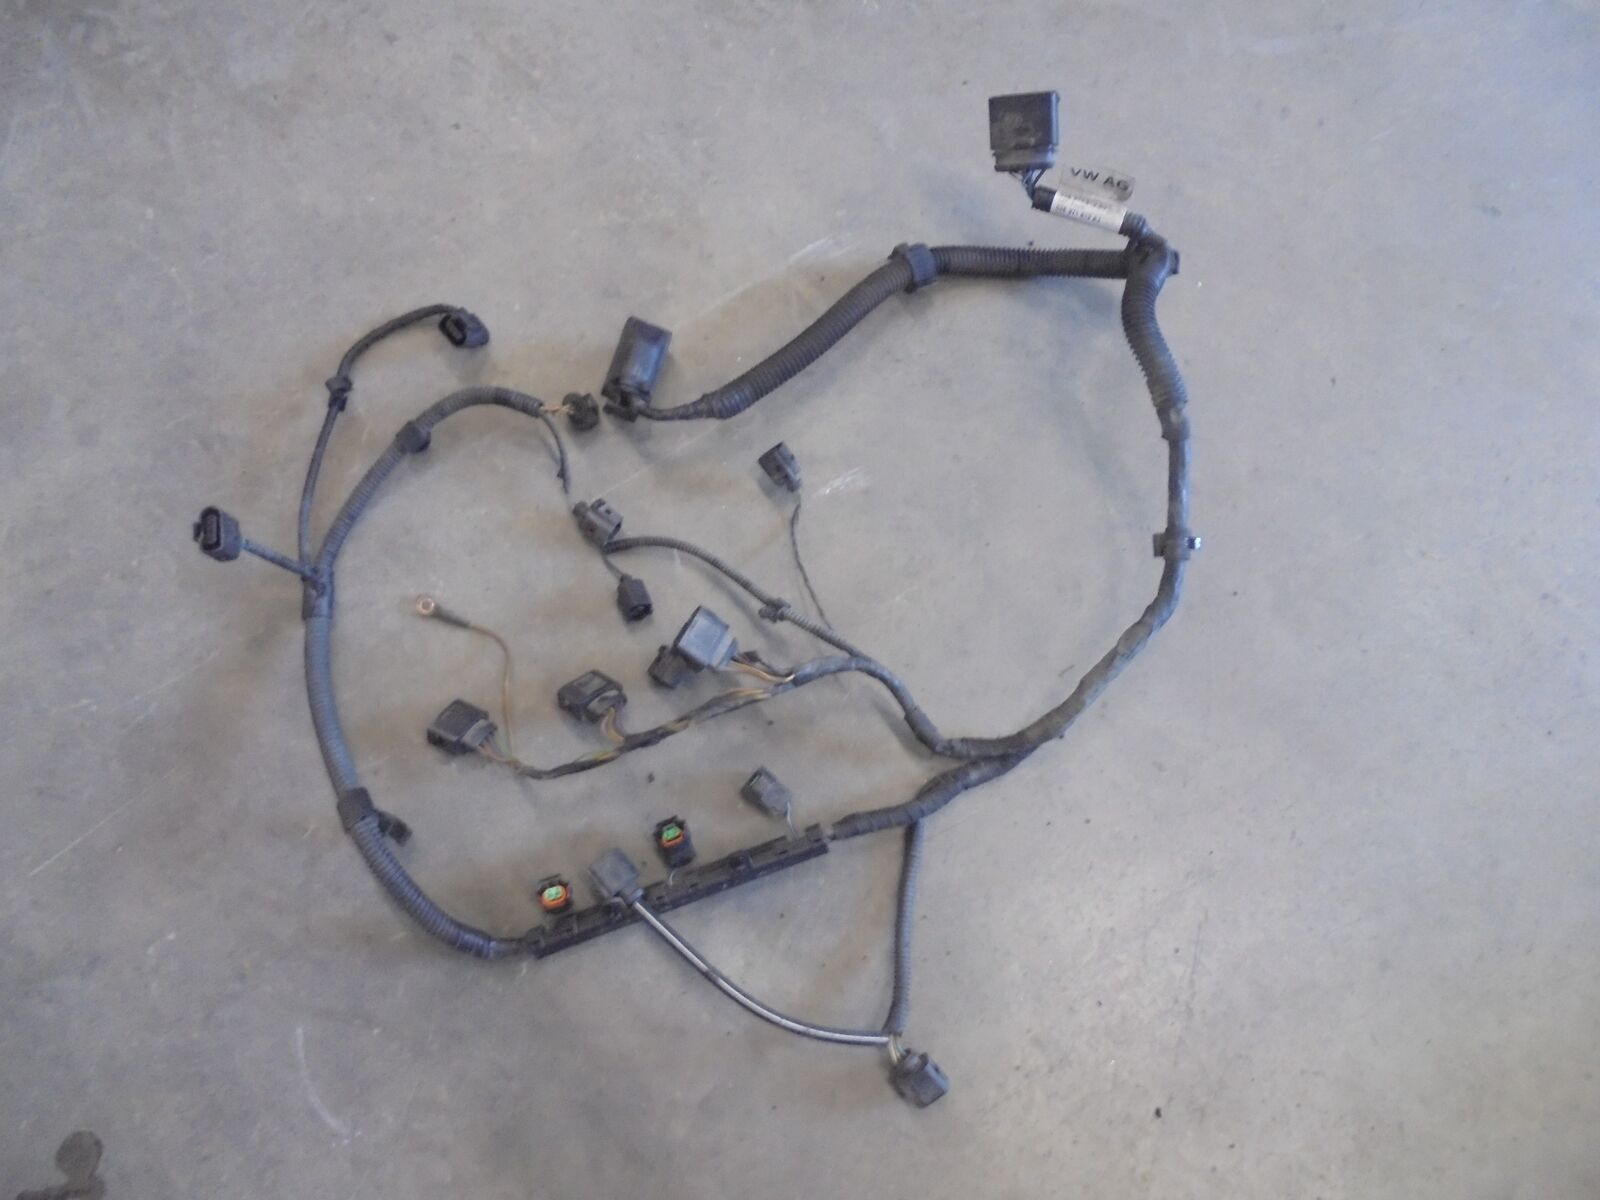 Engine Wiring Loom Vw Polo 6r 03e971612aj 12 44kw Cgp Cgpb 145473 Volkswagen Looms 1 Of 2only Available